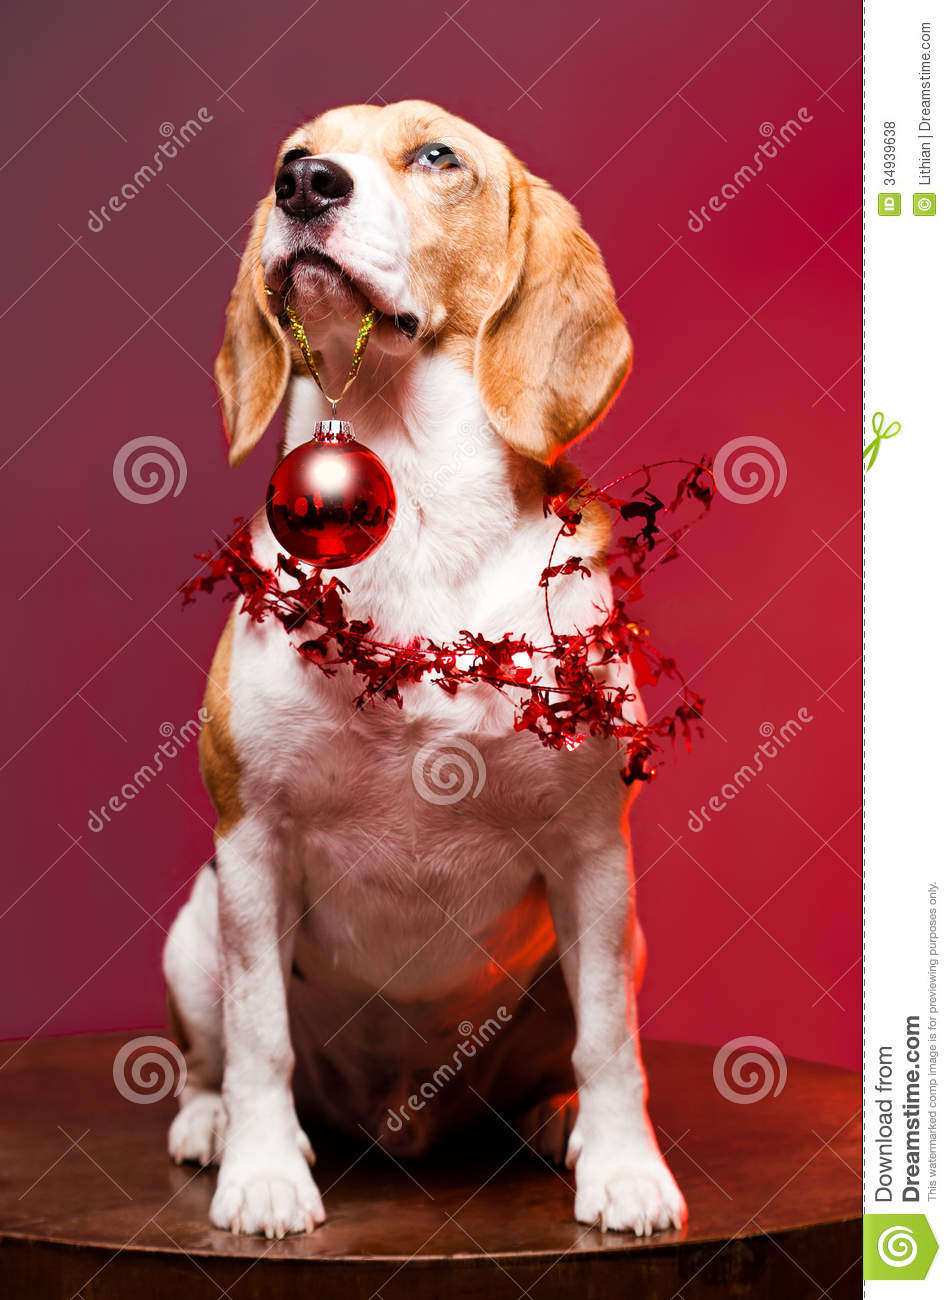 Cute Funny Christmas Dog. Royalty Free Stock Photos - Image: 34939638